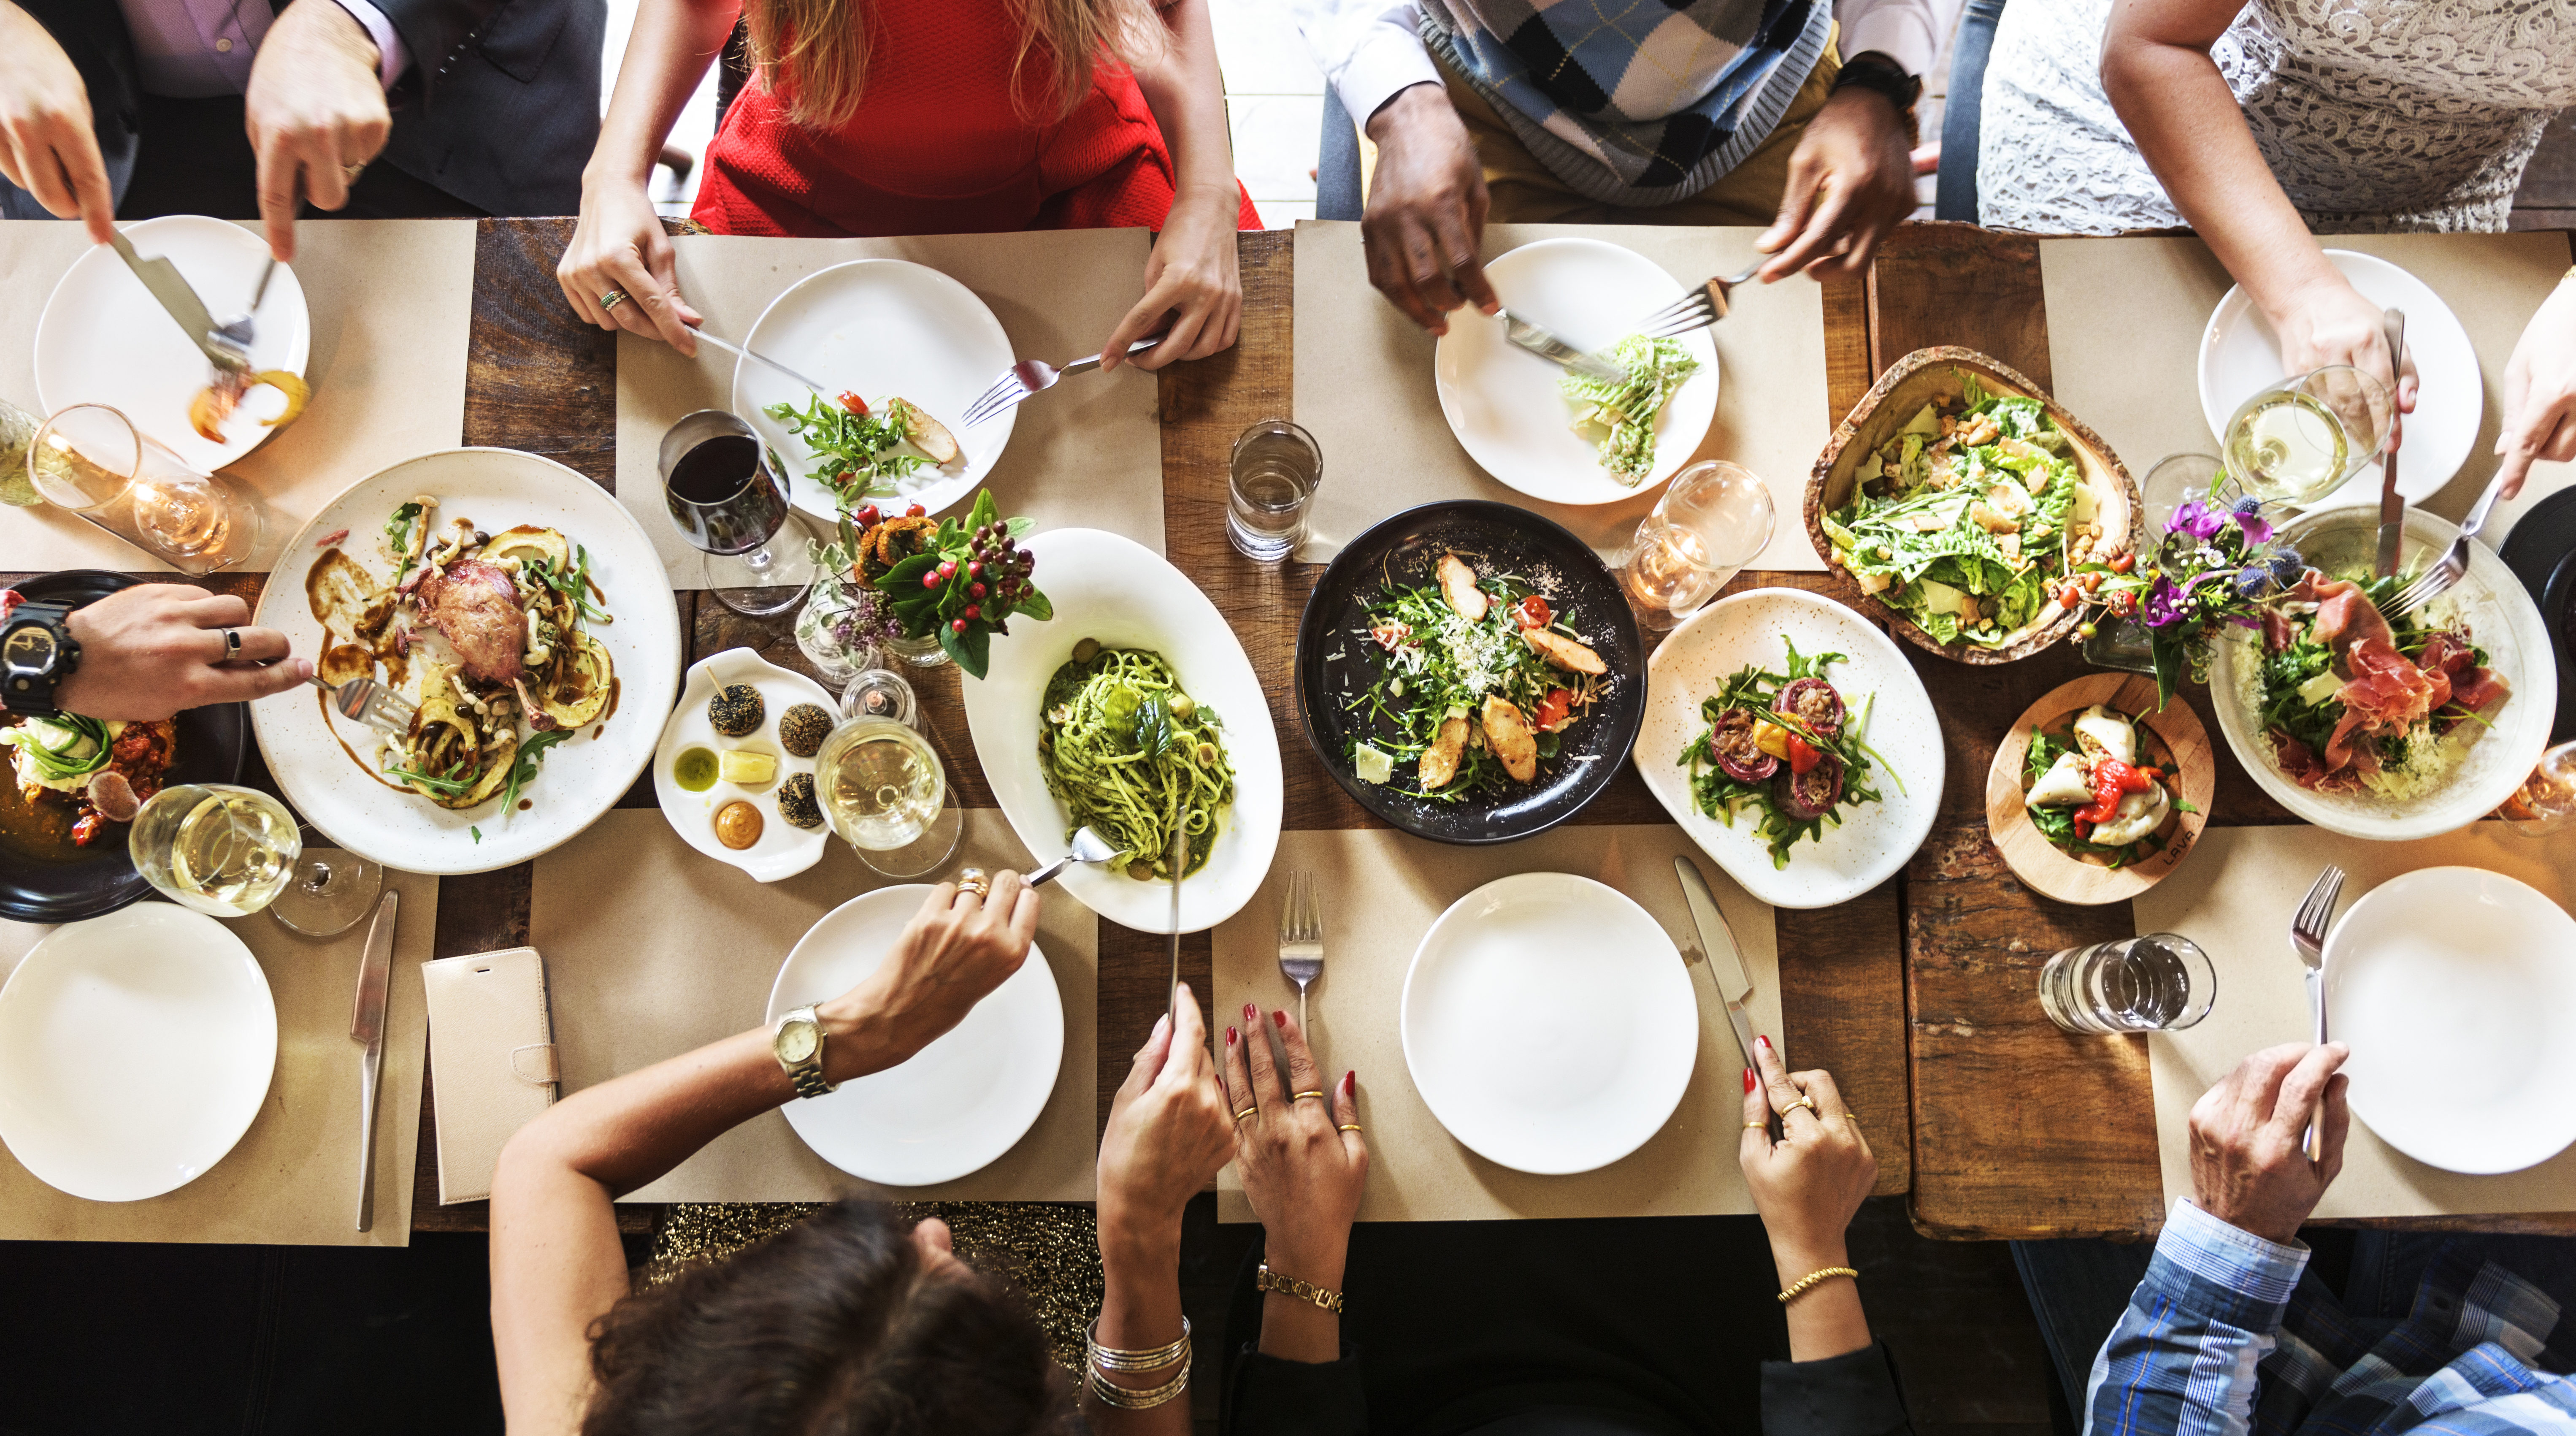 3 Steps Restaurant Workers and Diners Can Take to Be More Politically Involved